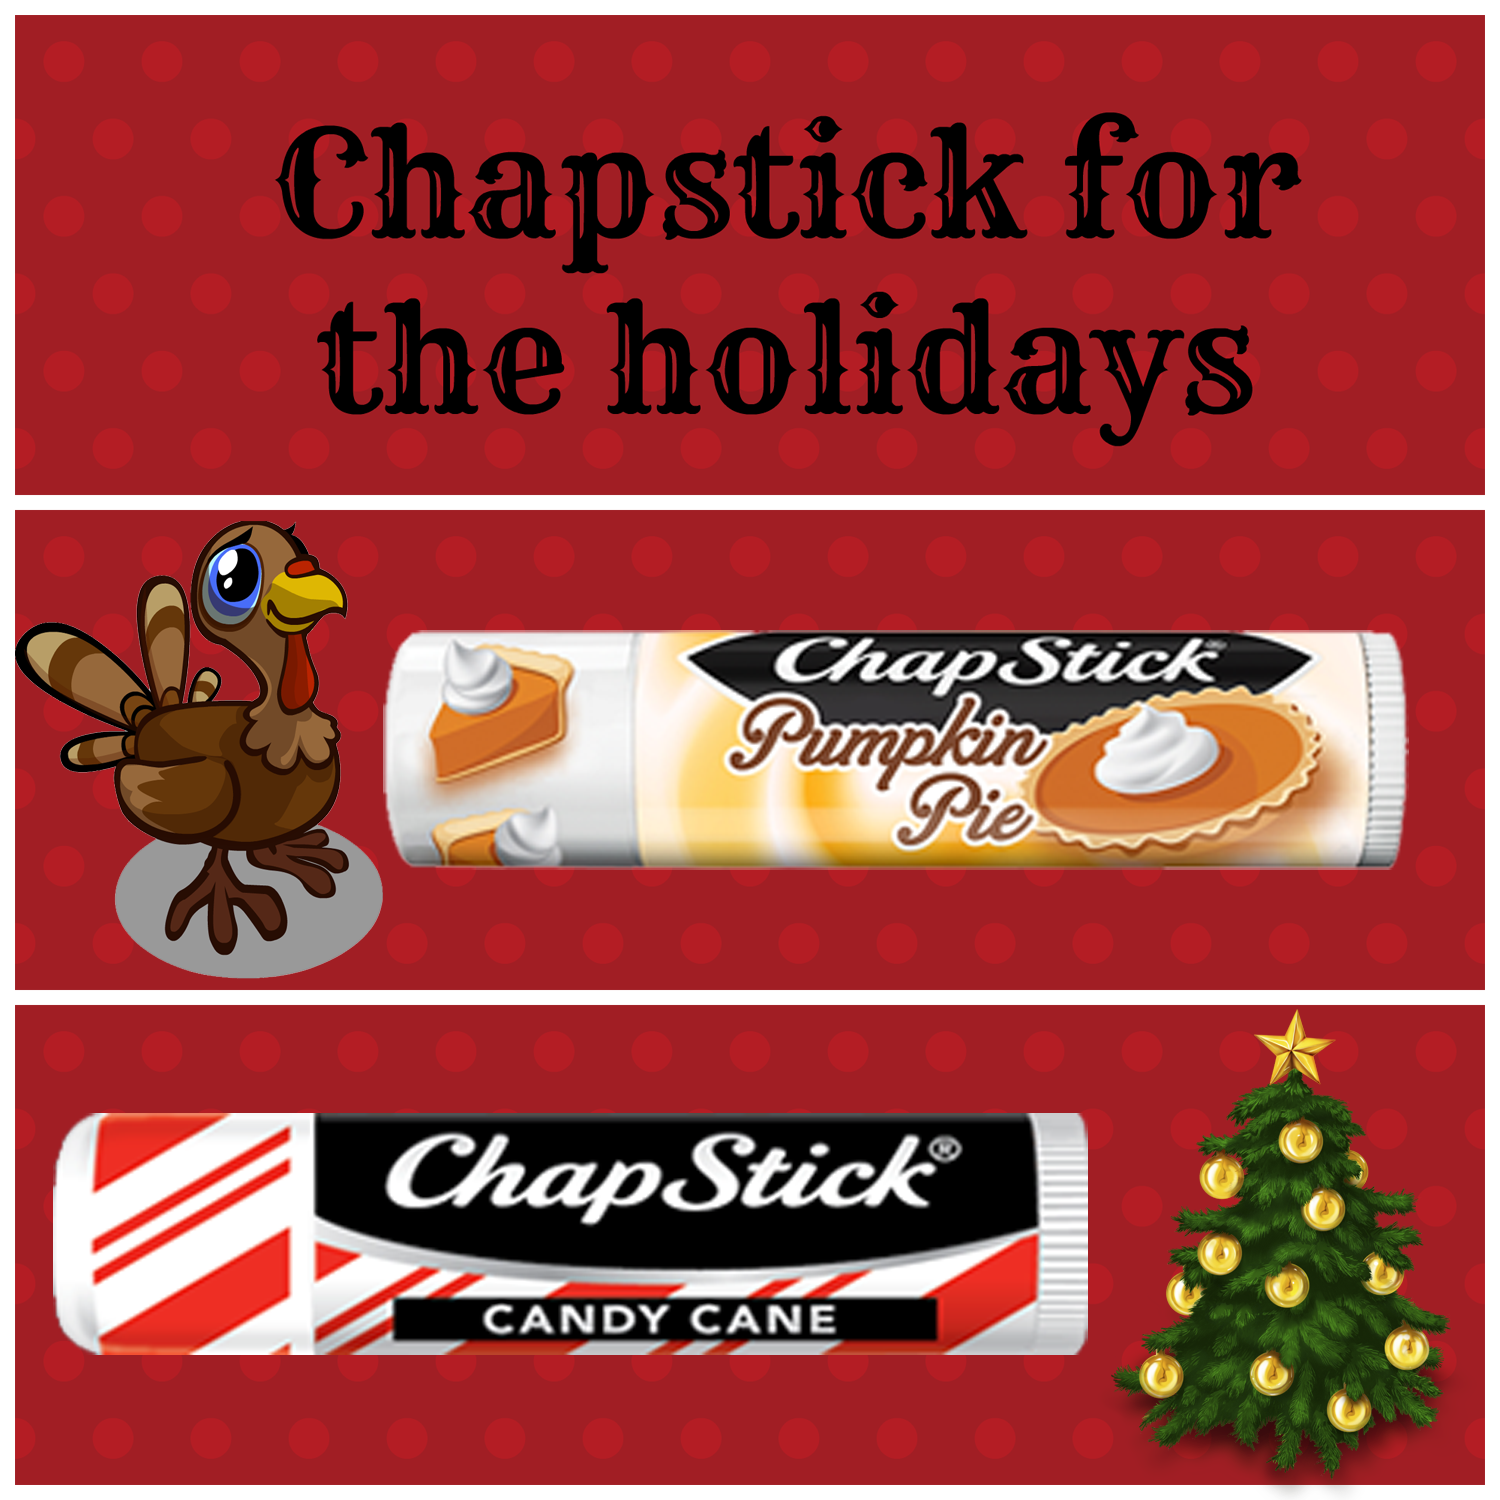 Chapstick for the holidays